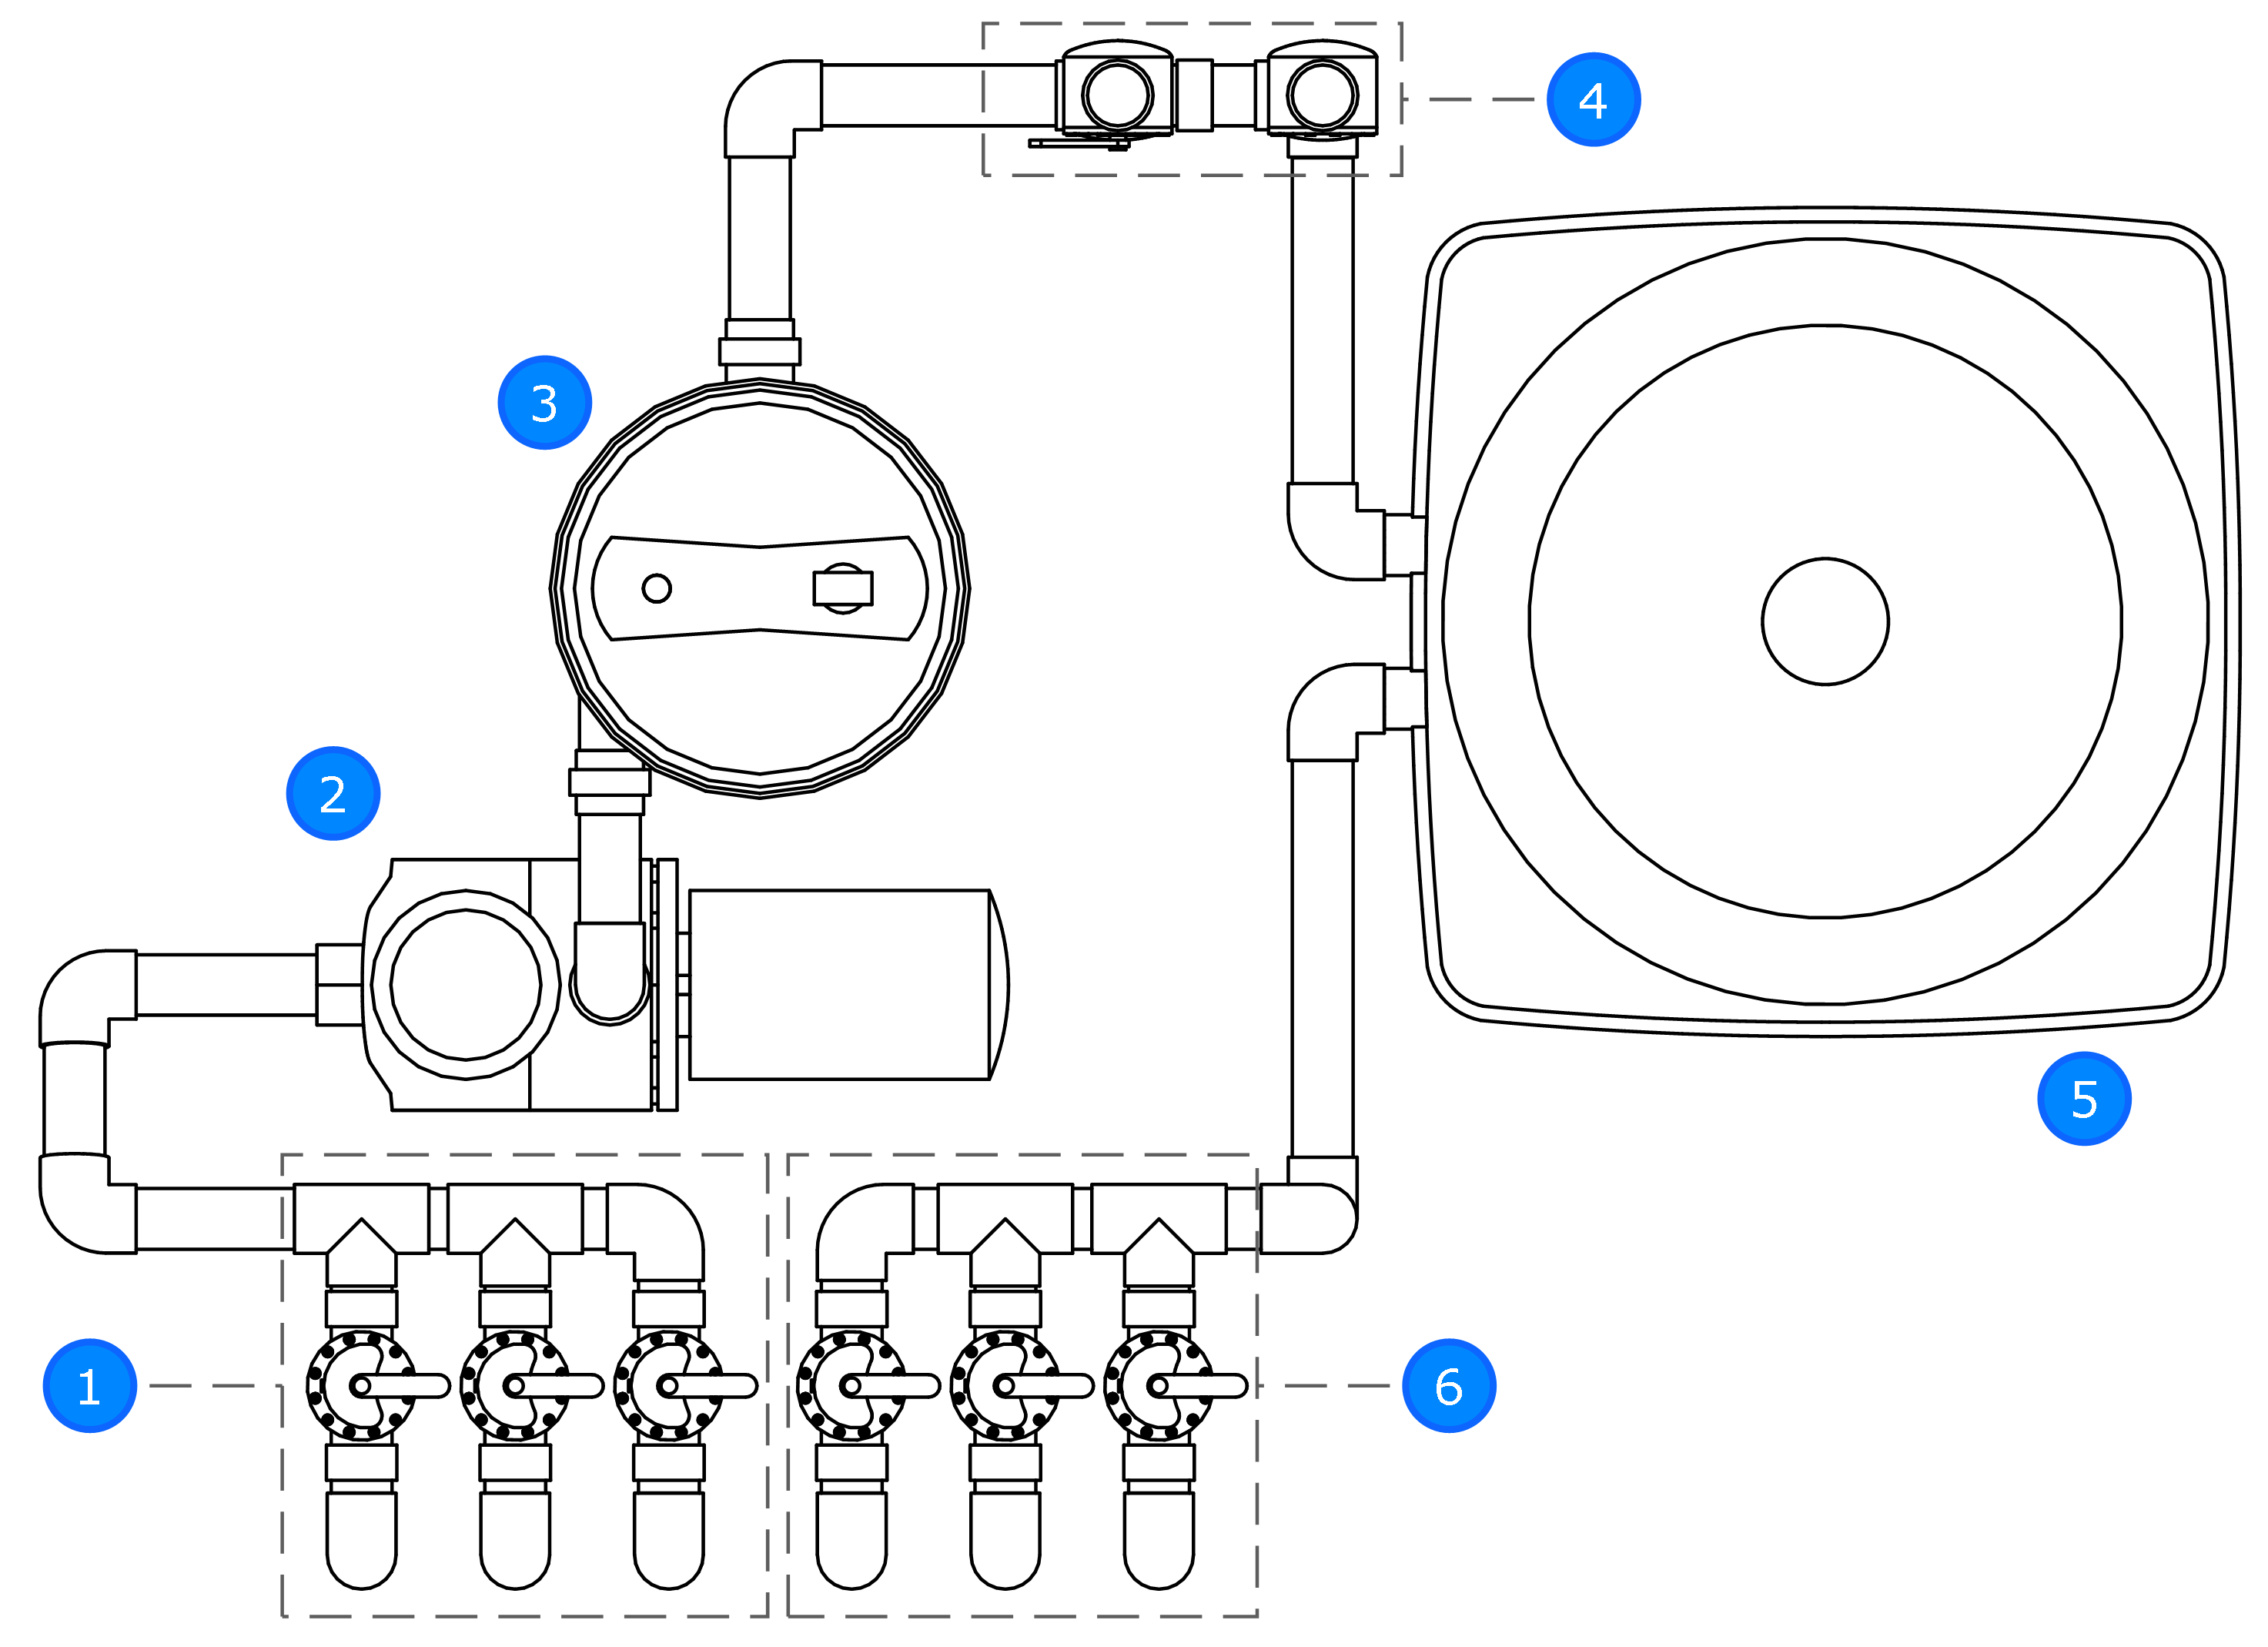 Pool Valves With Solar Pool Heating Explained